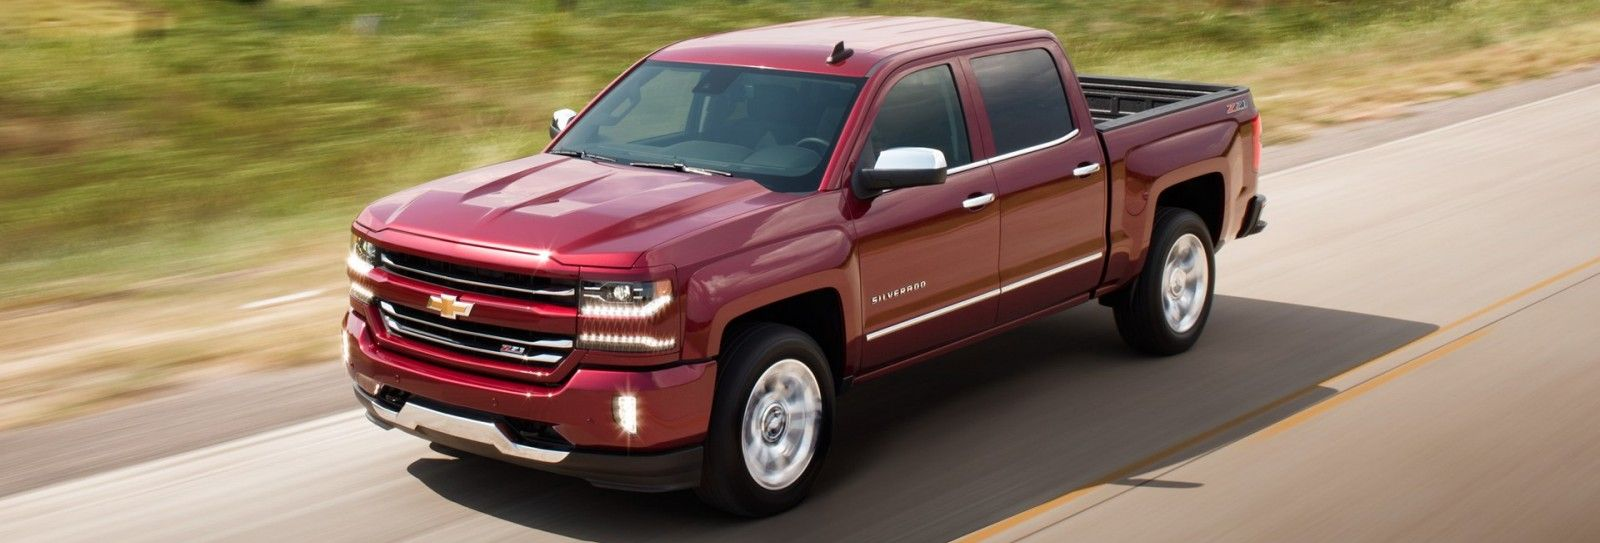 Youngstown Chevrolet >> 2017 Chevy Silverado 1500 For Sale In Youngstown Oh Sweeney Chevrolet